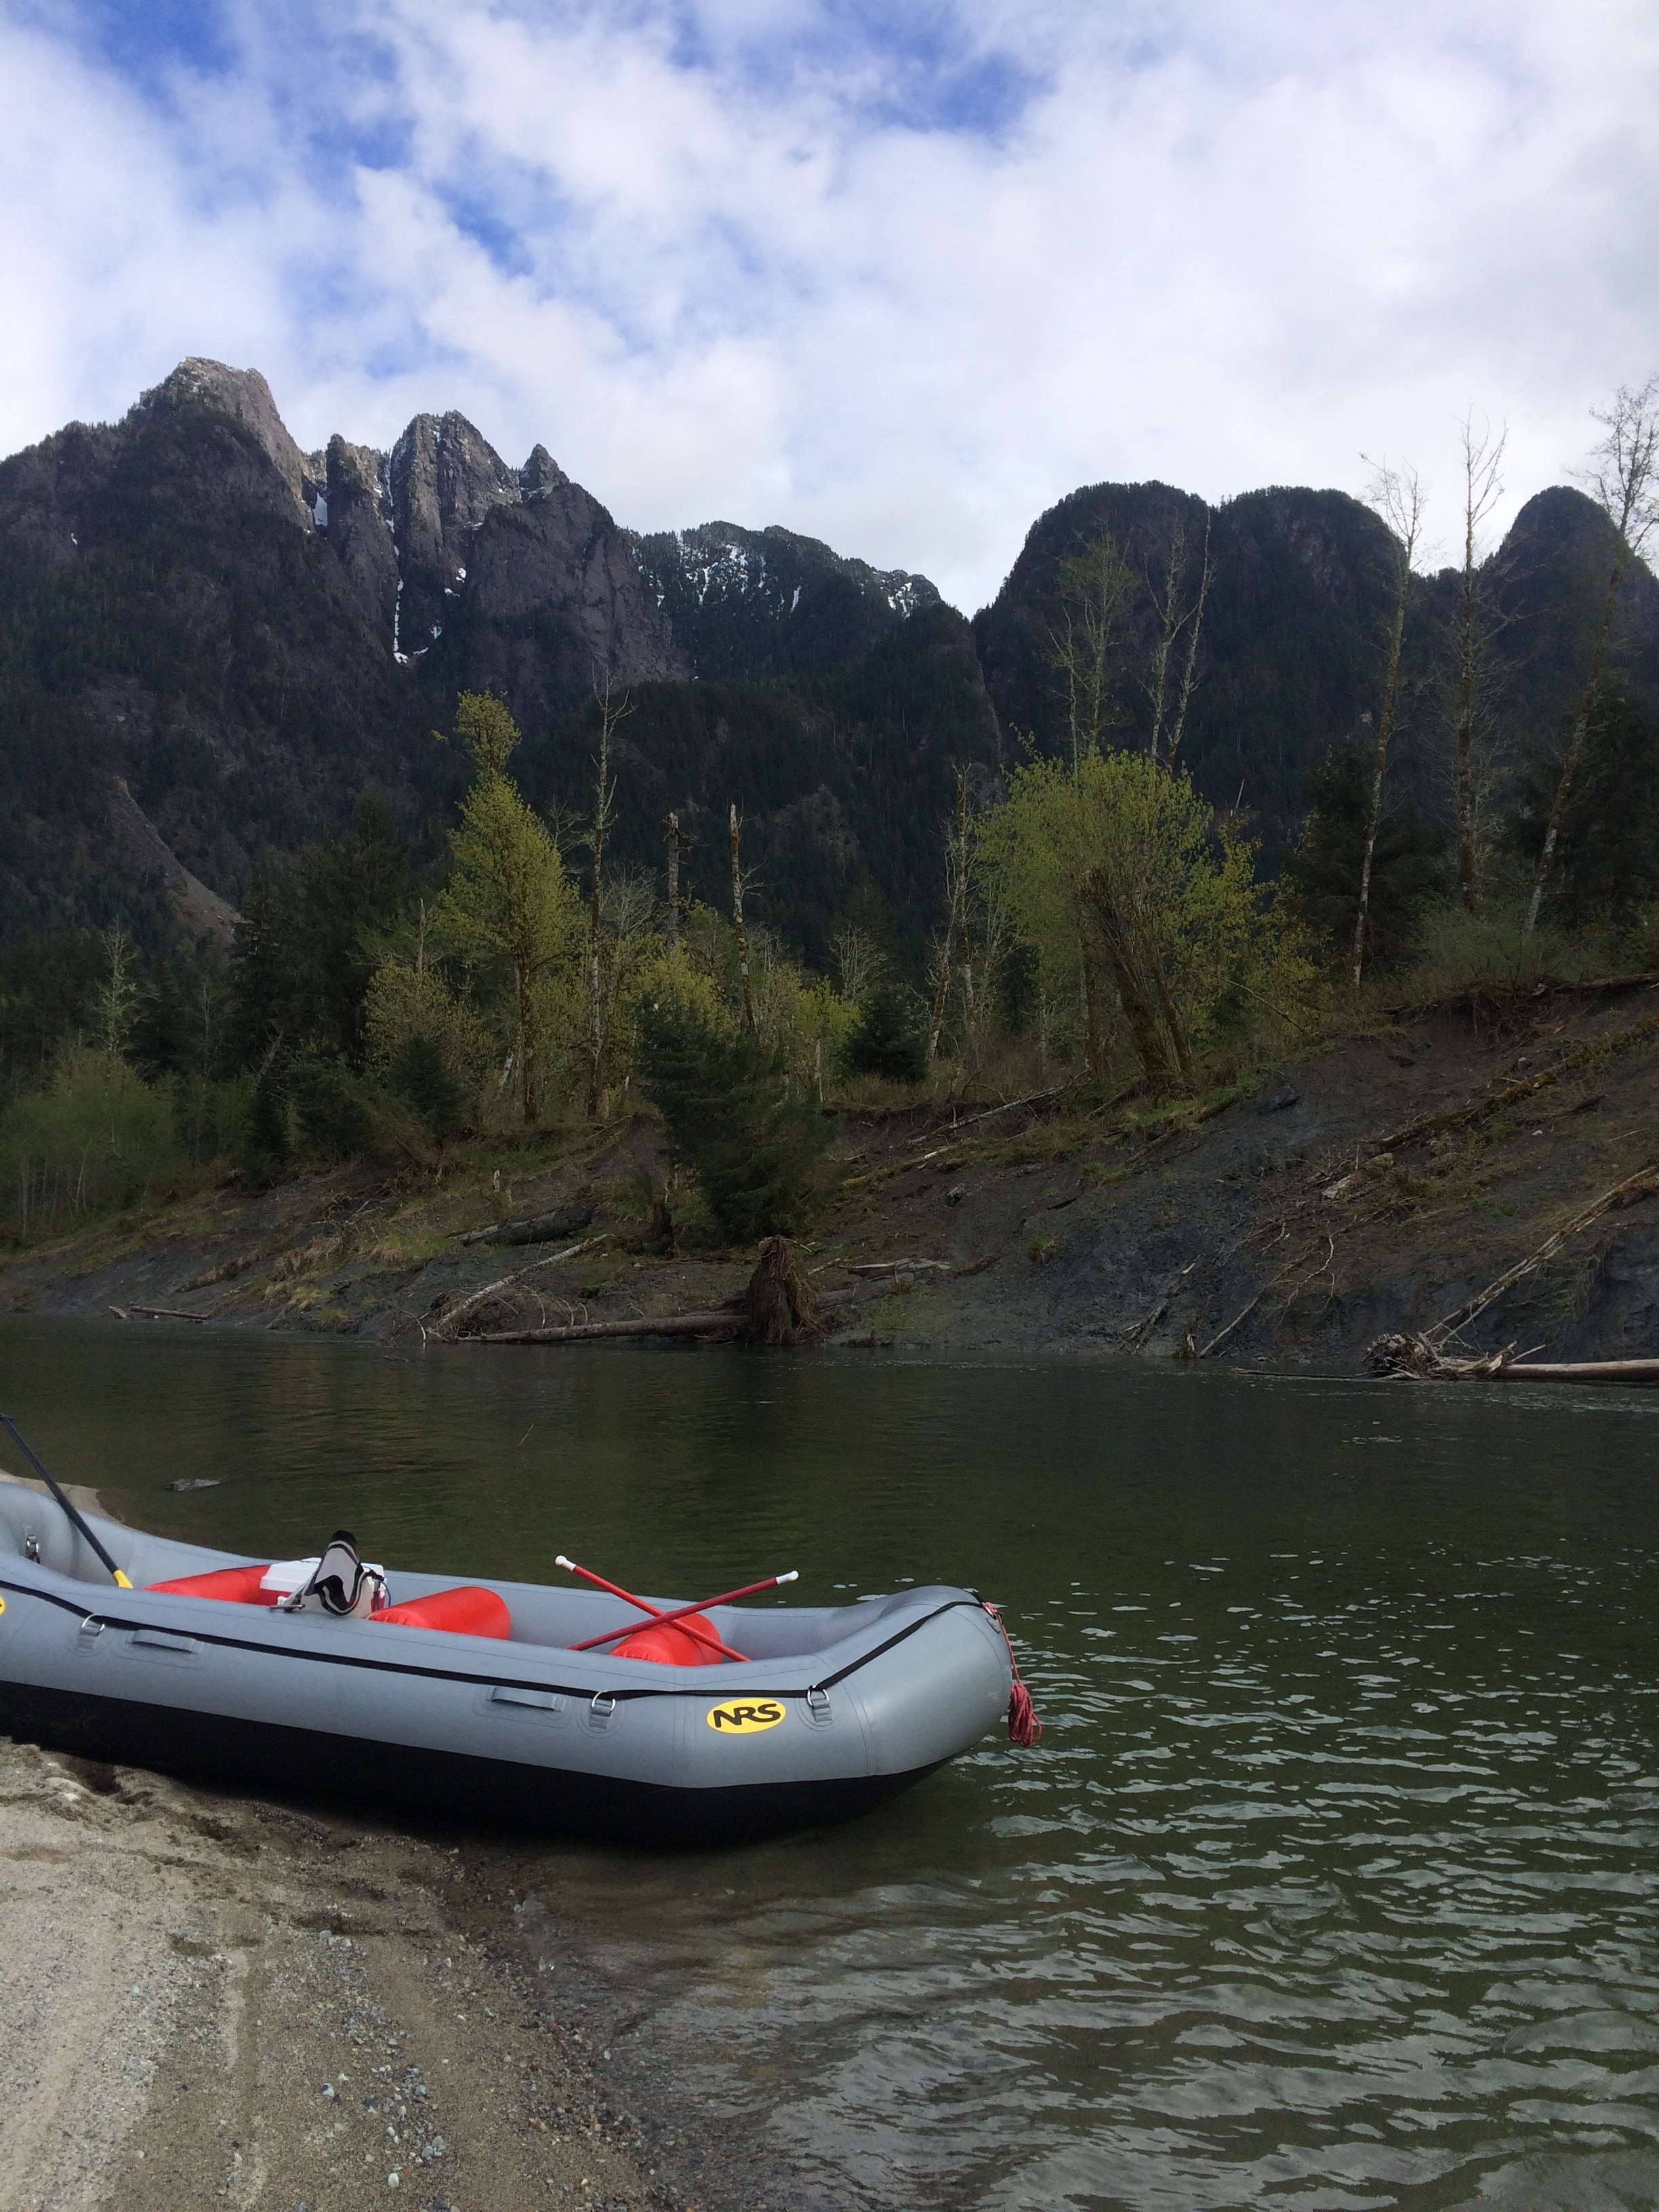 """This picture is from the """"upper"""" section of river on the Snoqualmie, in the Forest Service district above our whitewater section. The guides enjoyed the slow cruise and scenery, but looked ahead to see what the river had to offer in terms of excitement."""